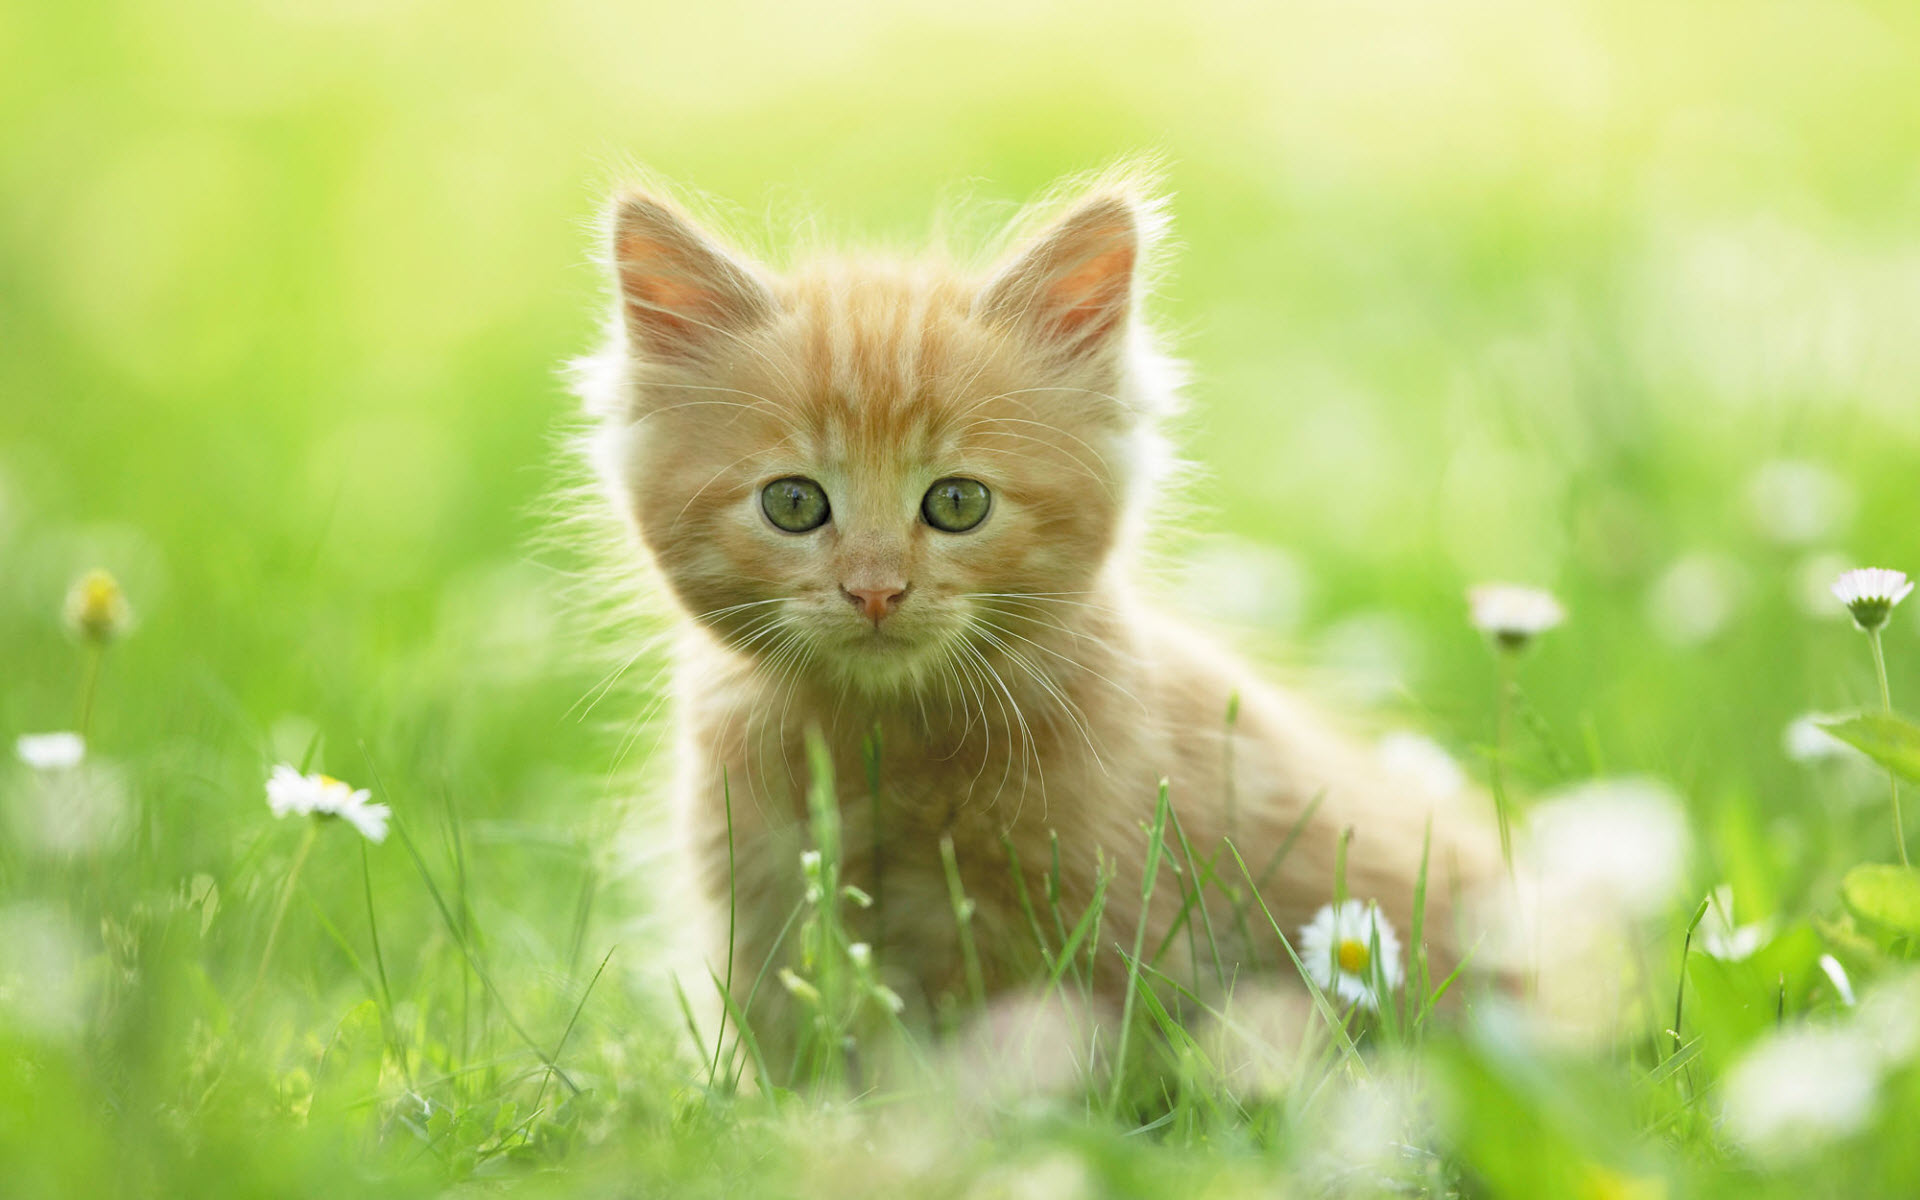 Cute Kitten Wallpapers HD Wallpapers 1920x1200